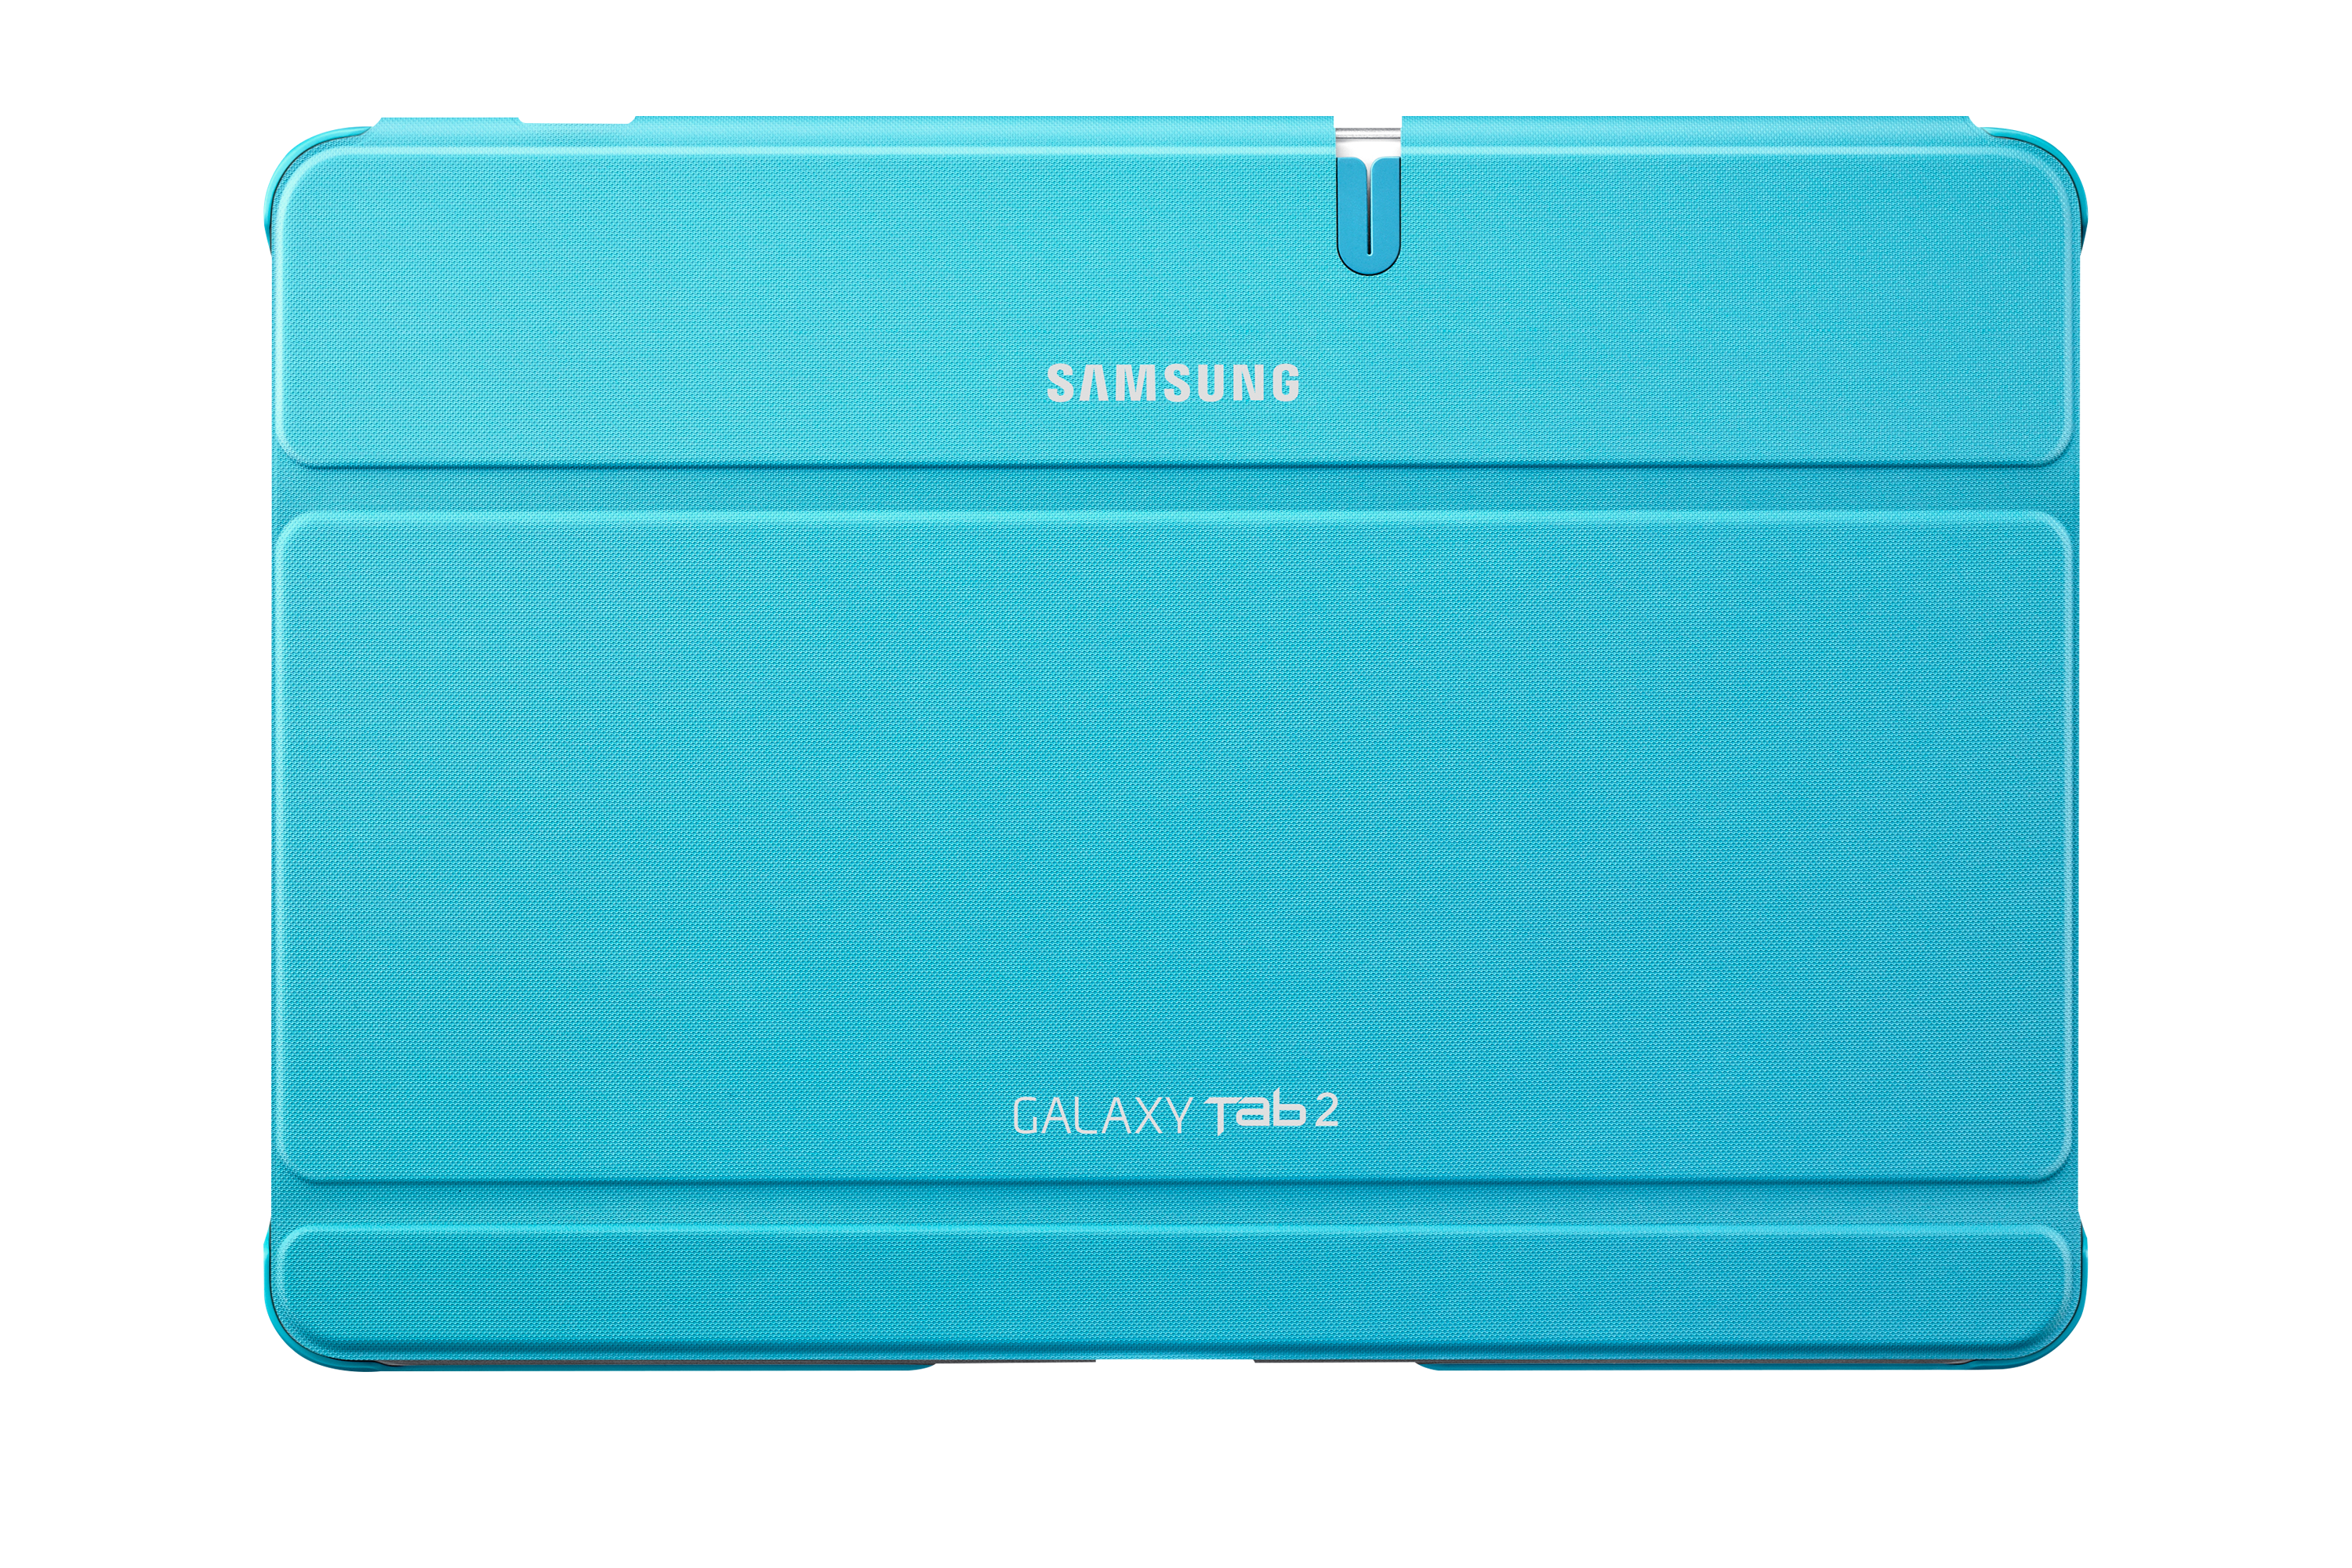 Book Cover (Galaxy Tab 2 10.1)